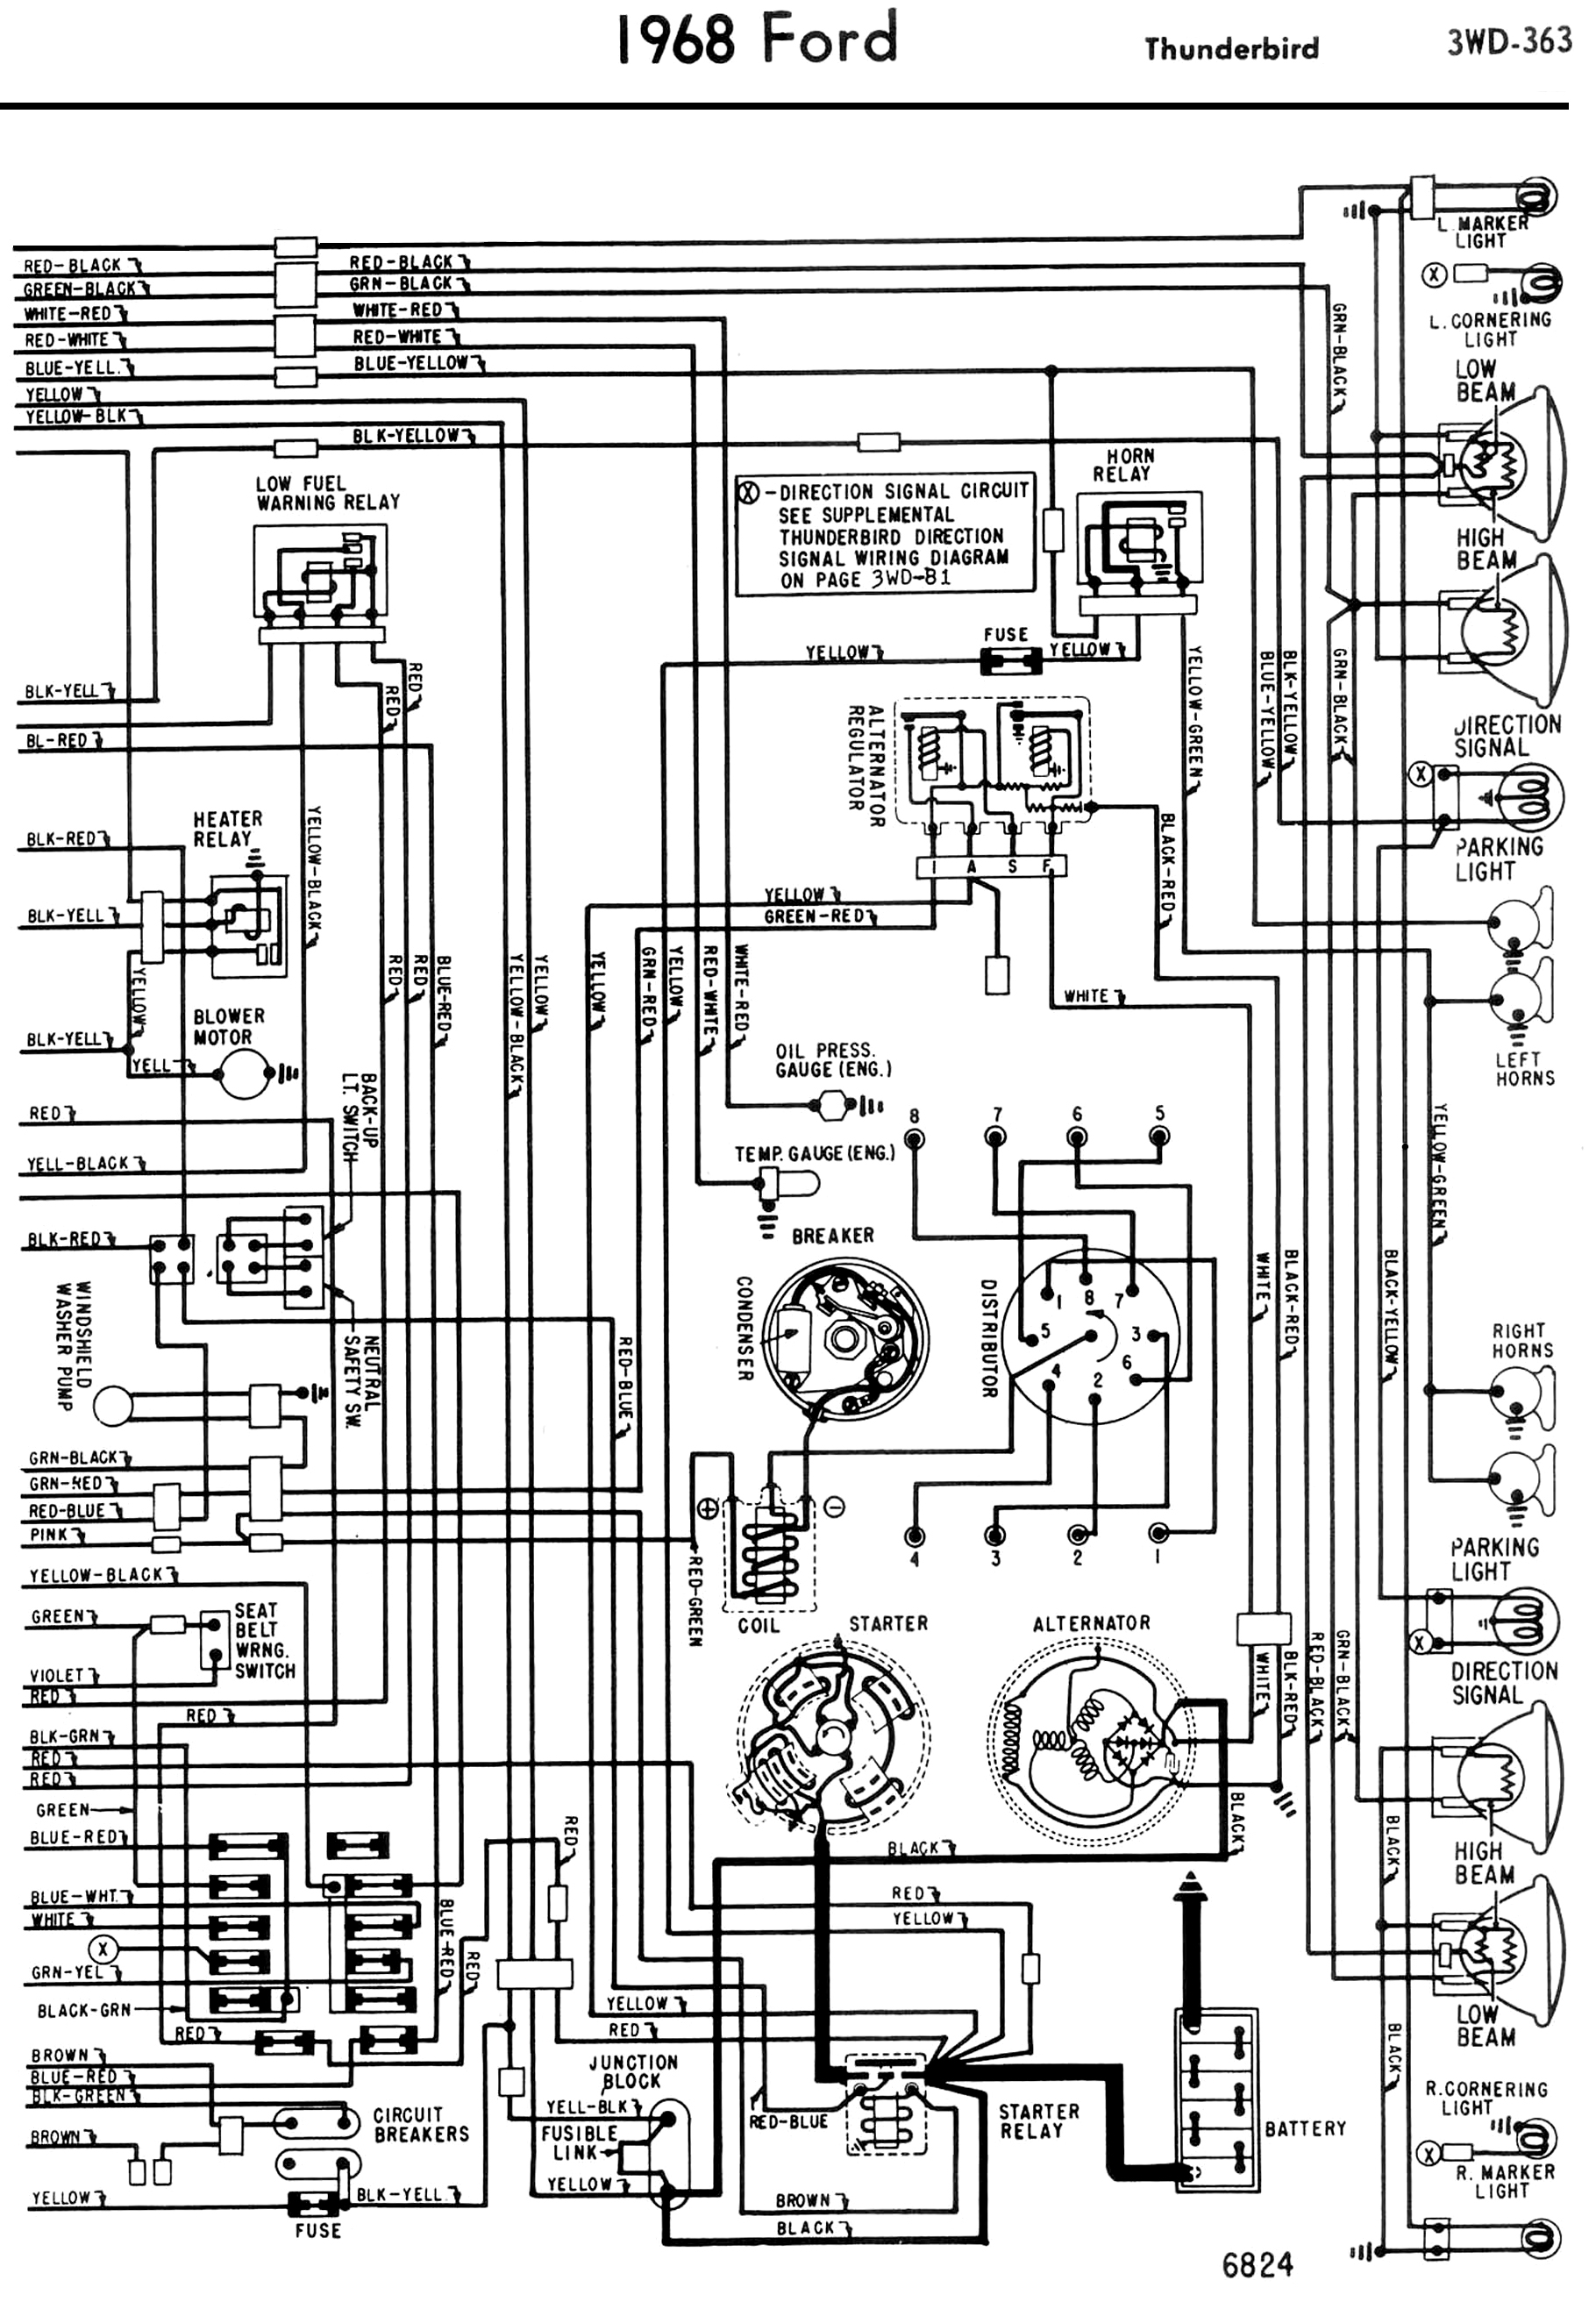 hight resolution of 1958 68 ford electrical schematics ford f 250 4x4 wiring diagram 1968 f250 wiring diagrams